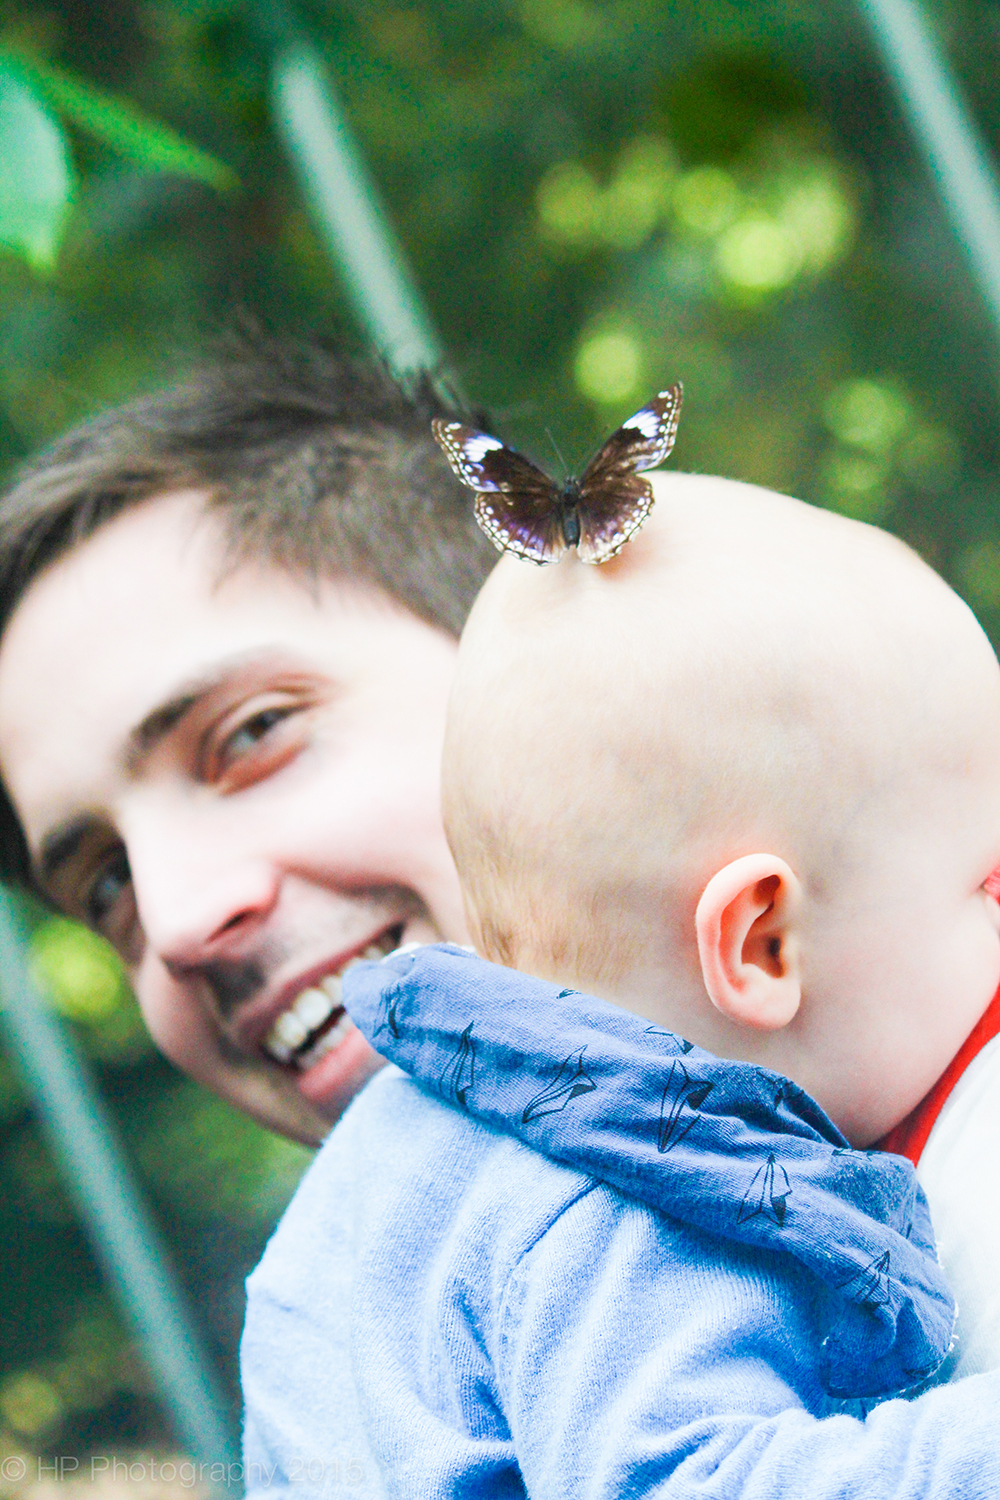 Caleb and his Dad get a visit from a Butterfly.